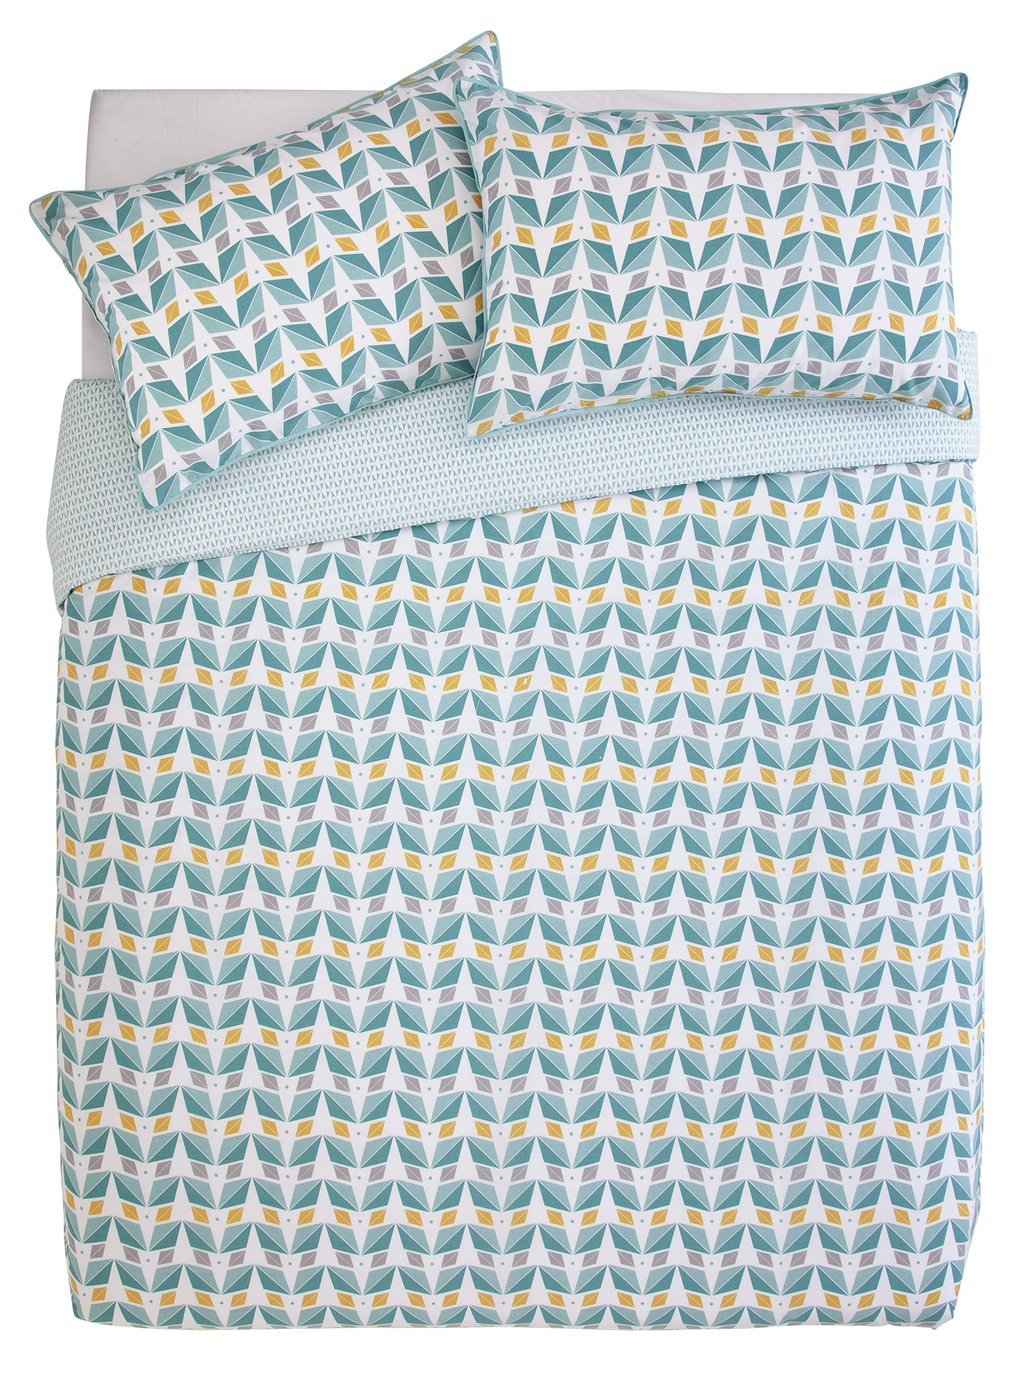 Argos Home Newstalgia Retro Bedding Set - Double